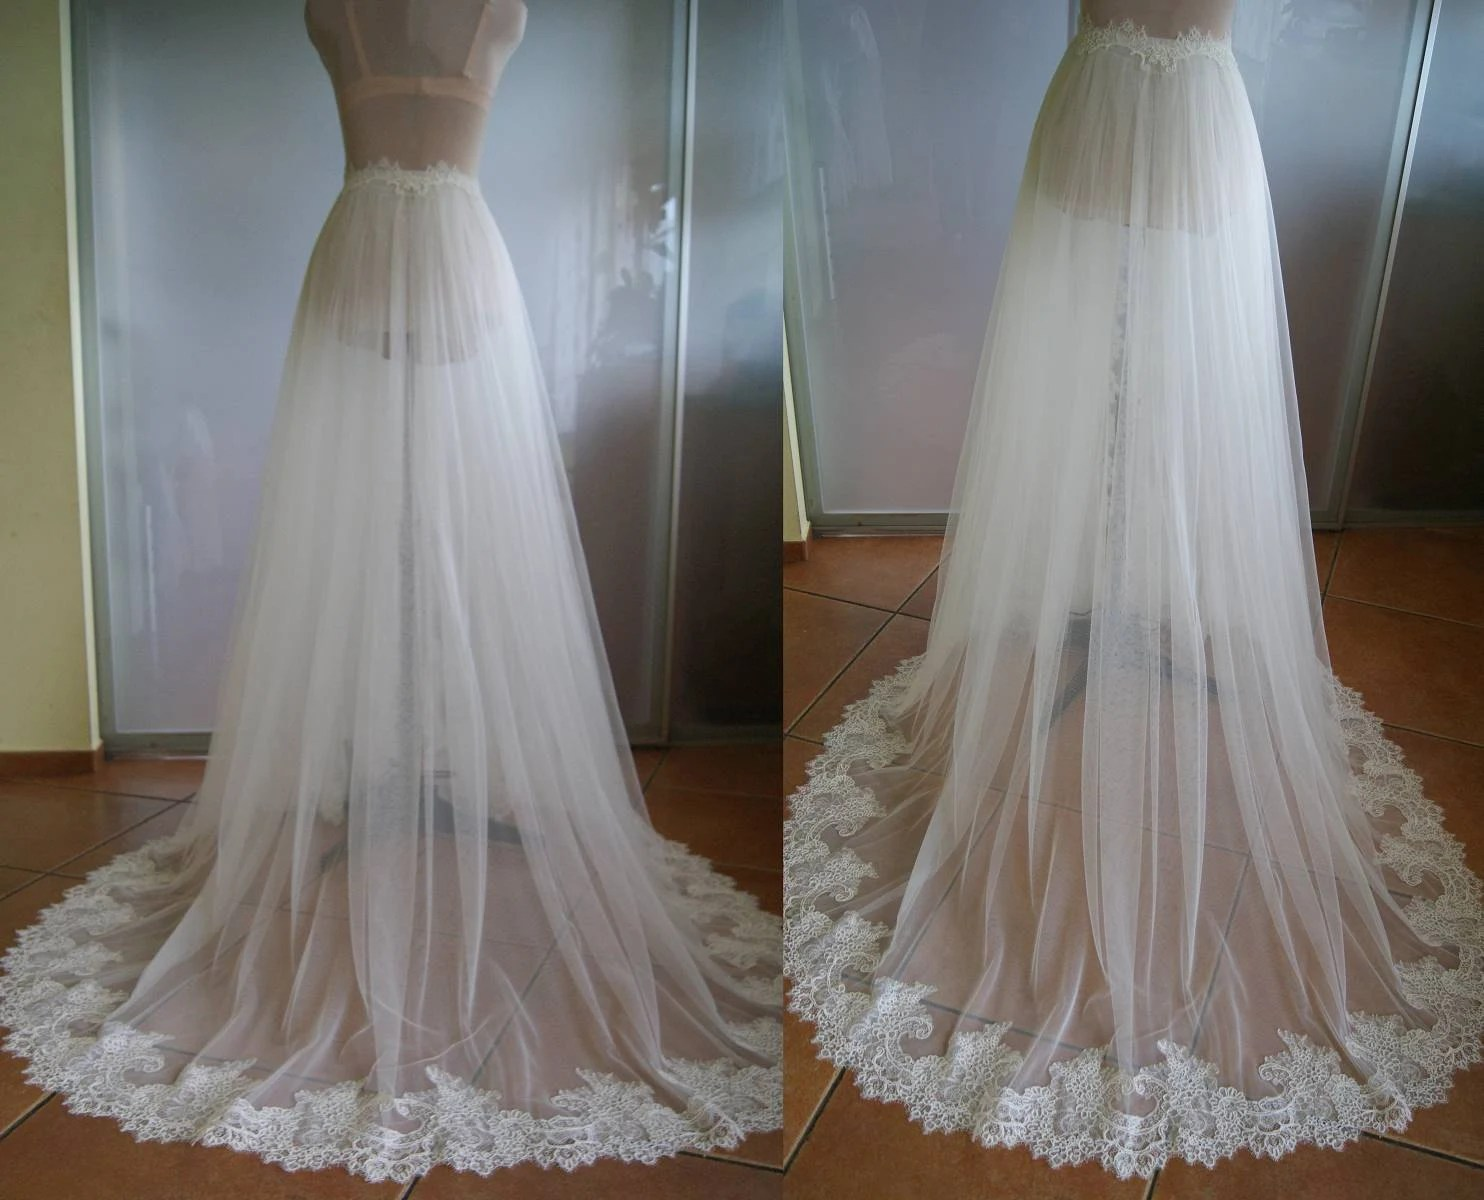 Detachable Skirt Train For Wedding Dress-NIKA. Tulle Lace